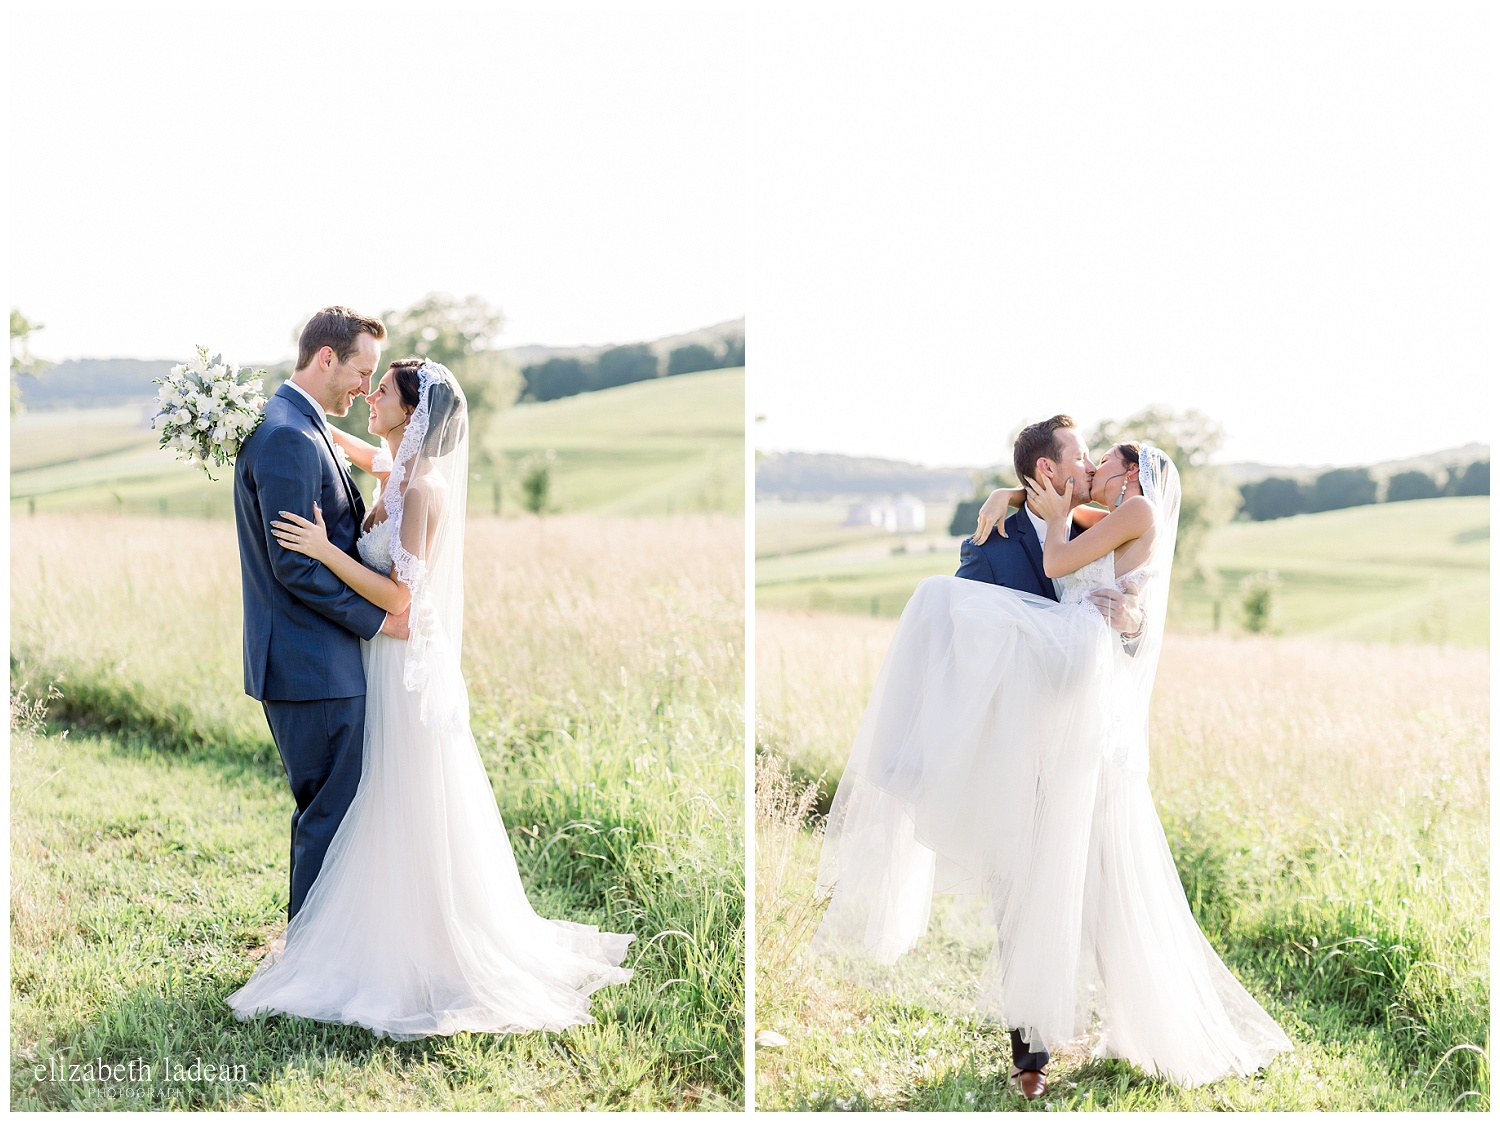 The Fields at 1890 wedding photography